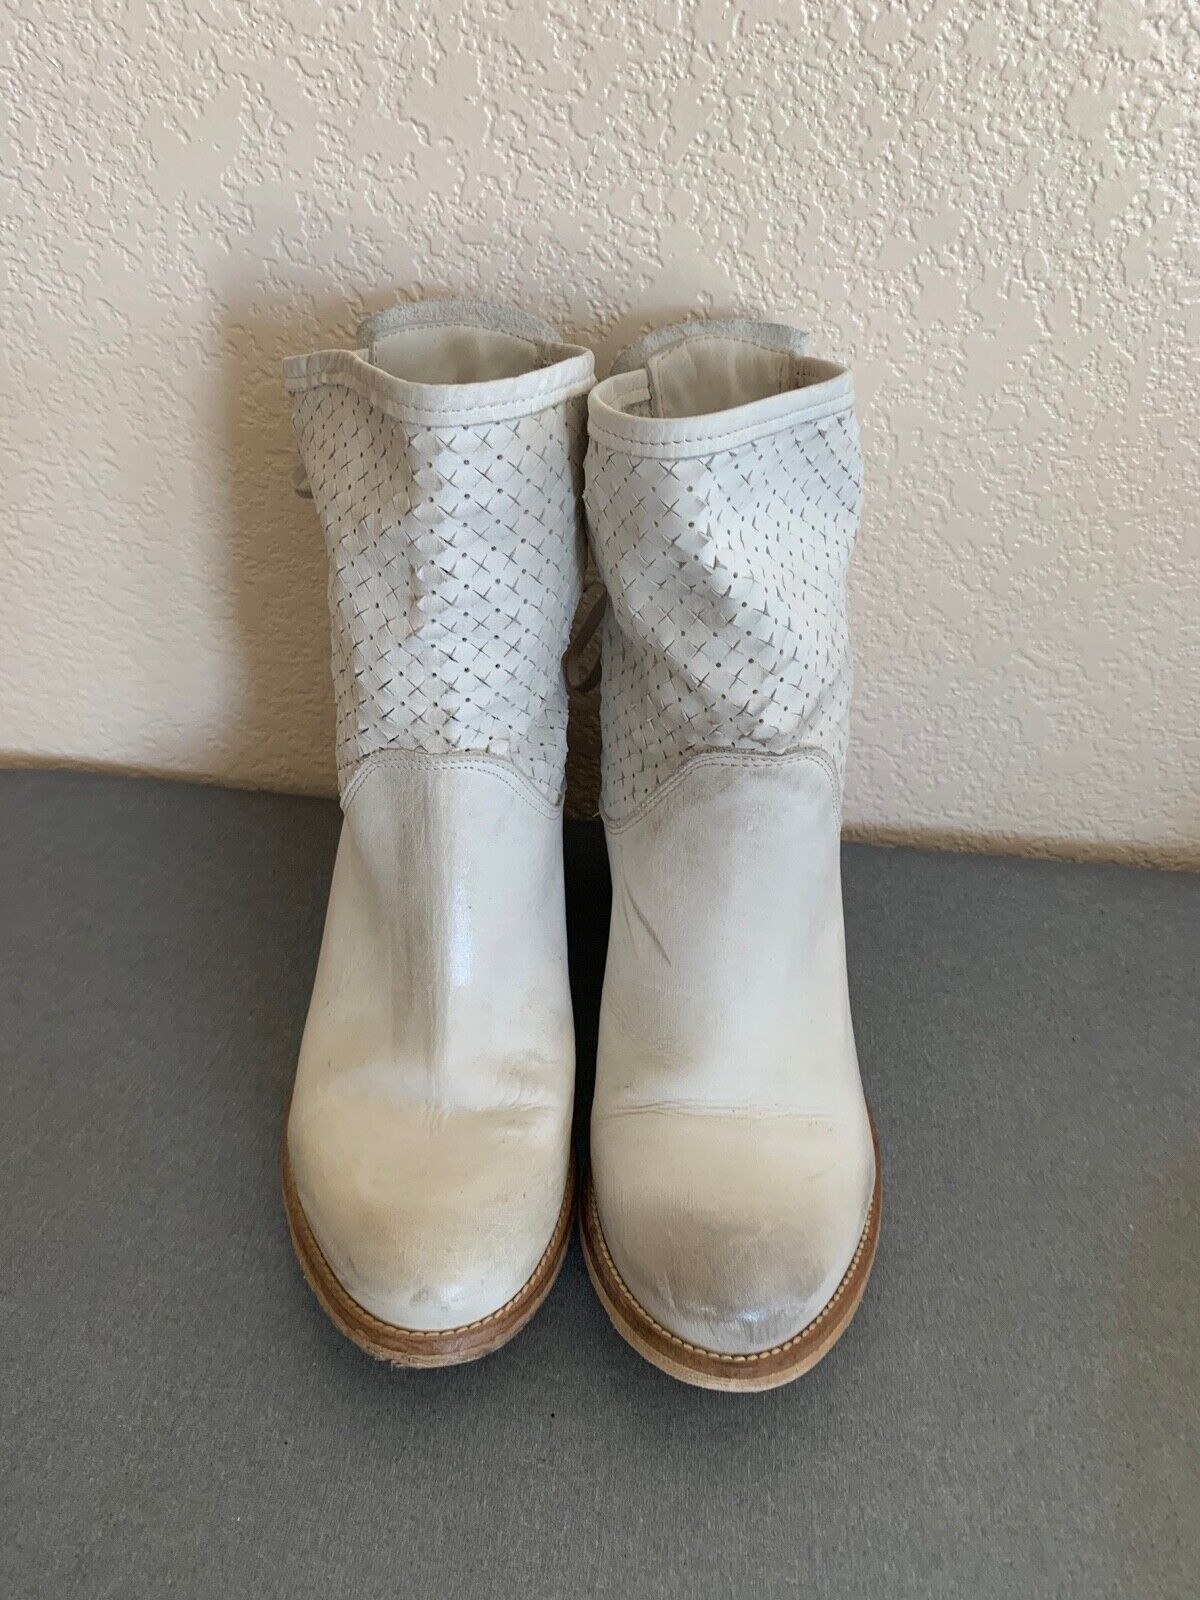 LEATHER BOOTS MADE IN ITALY SIZE 8.5,9